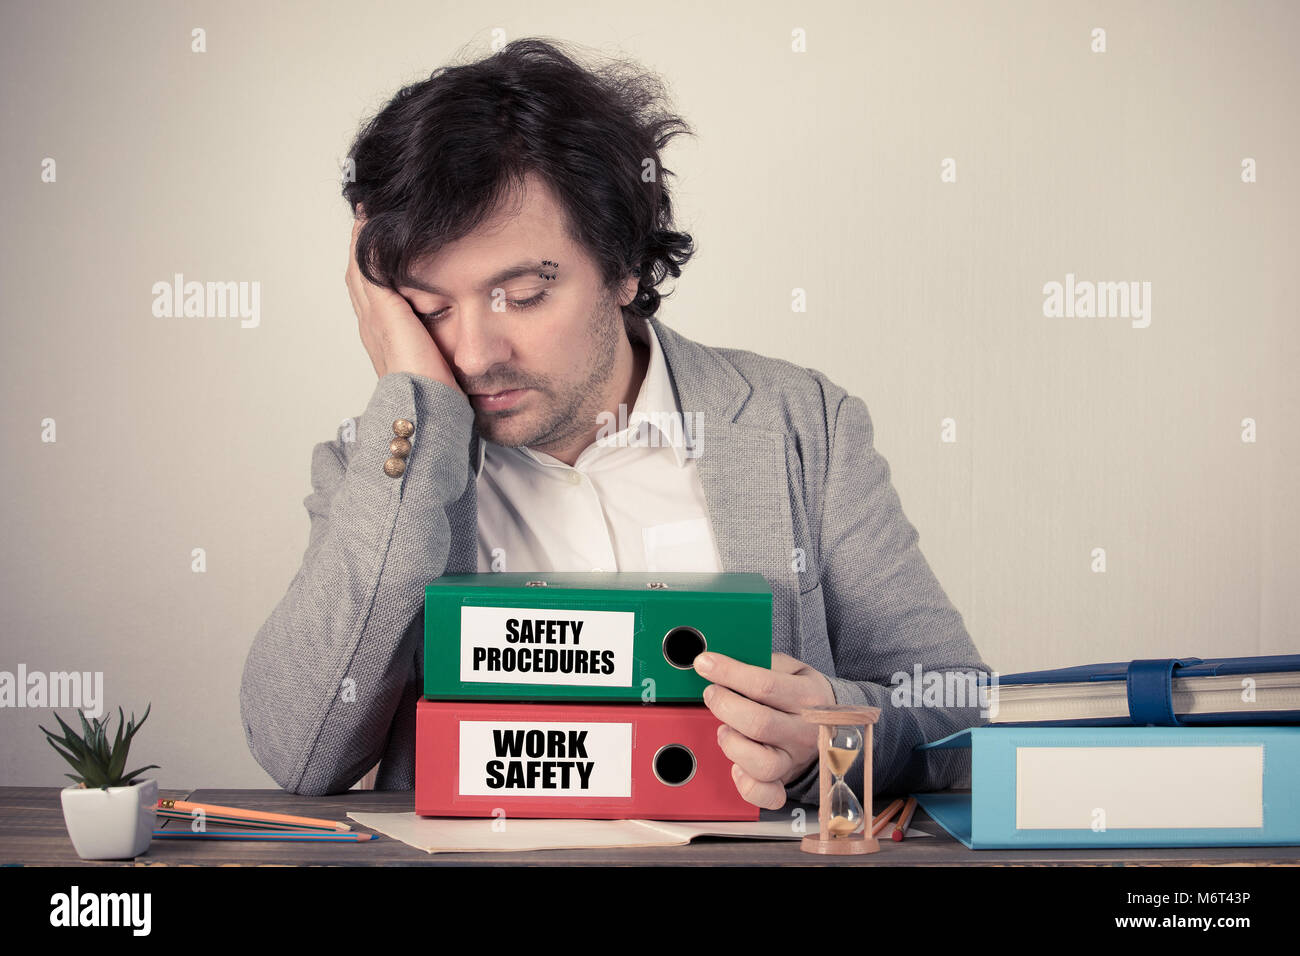 Work Safety and Safety Procedures text on the binders, worried bussinesman thinking by the work desk - Stock Image